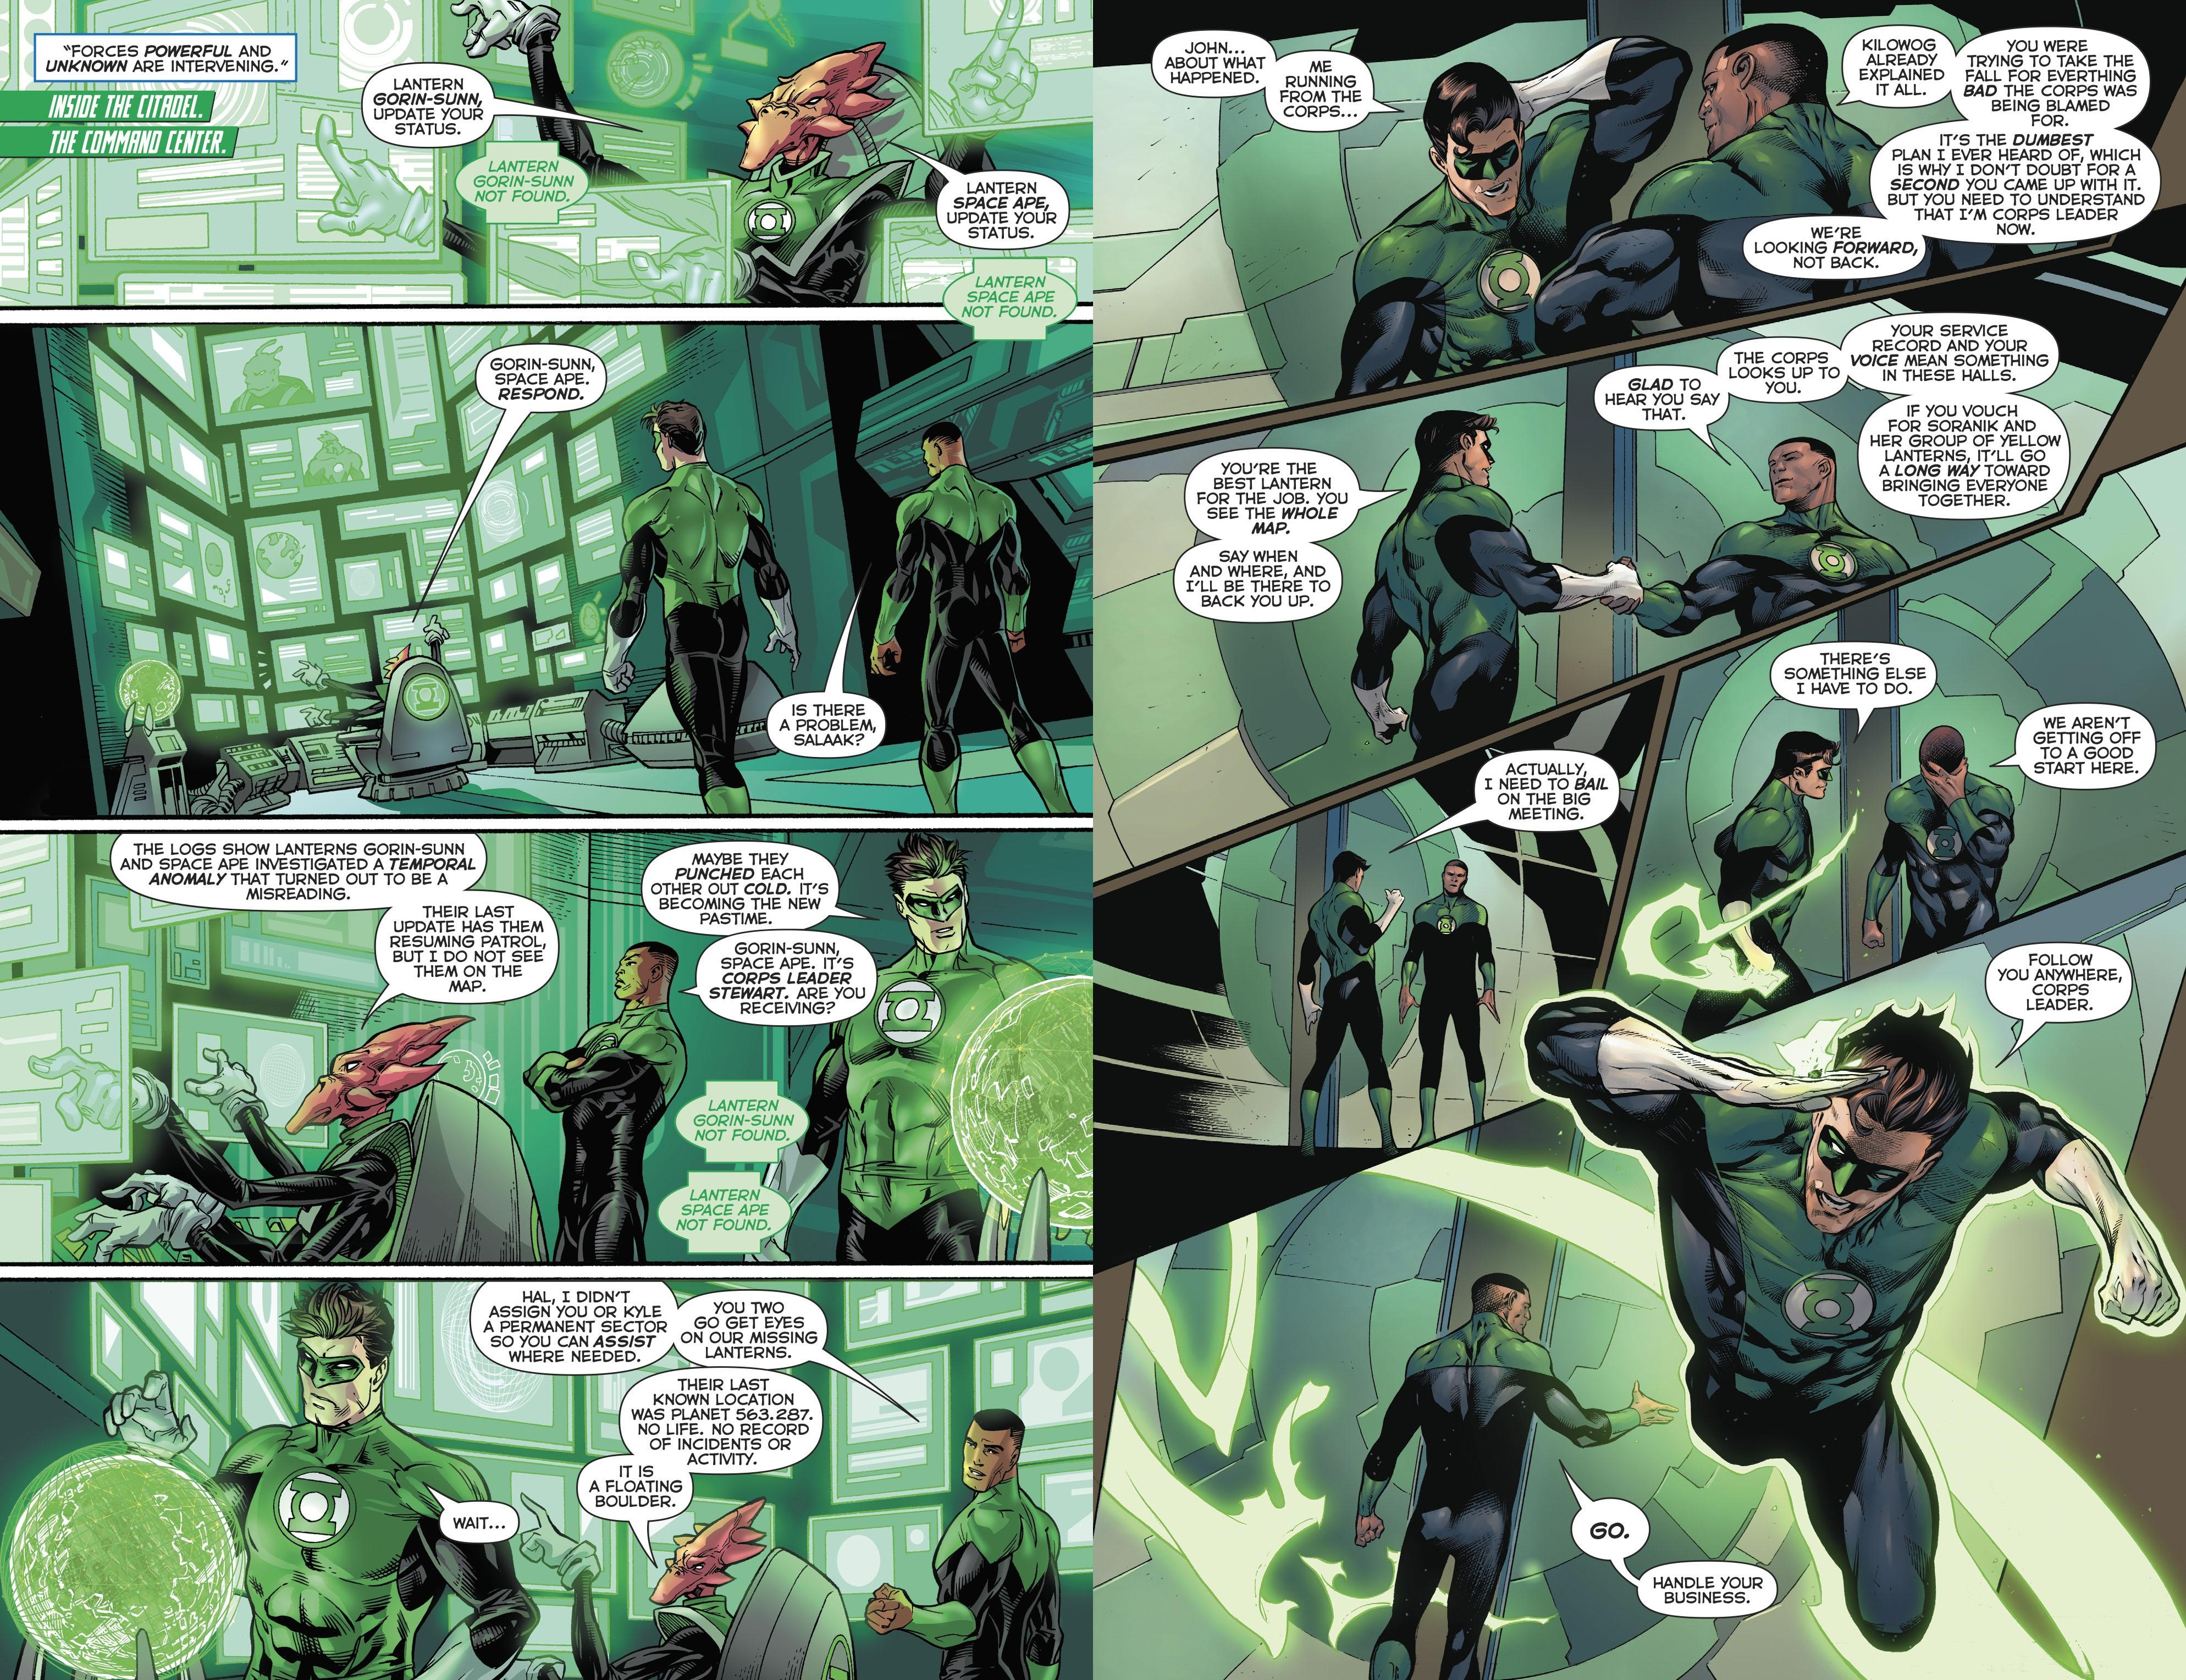 Hal Jordan and the Green Lantern Corps - Quest for Hope review